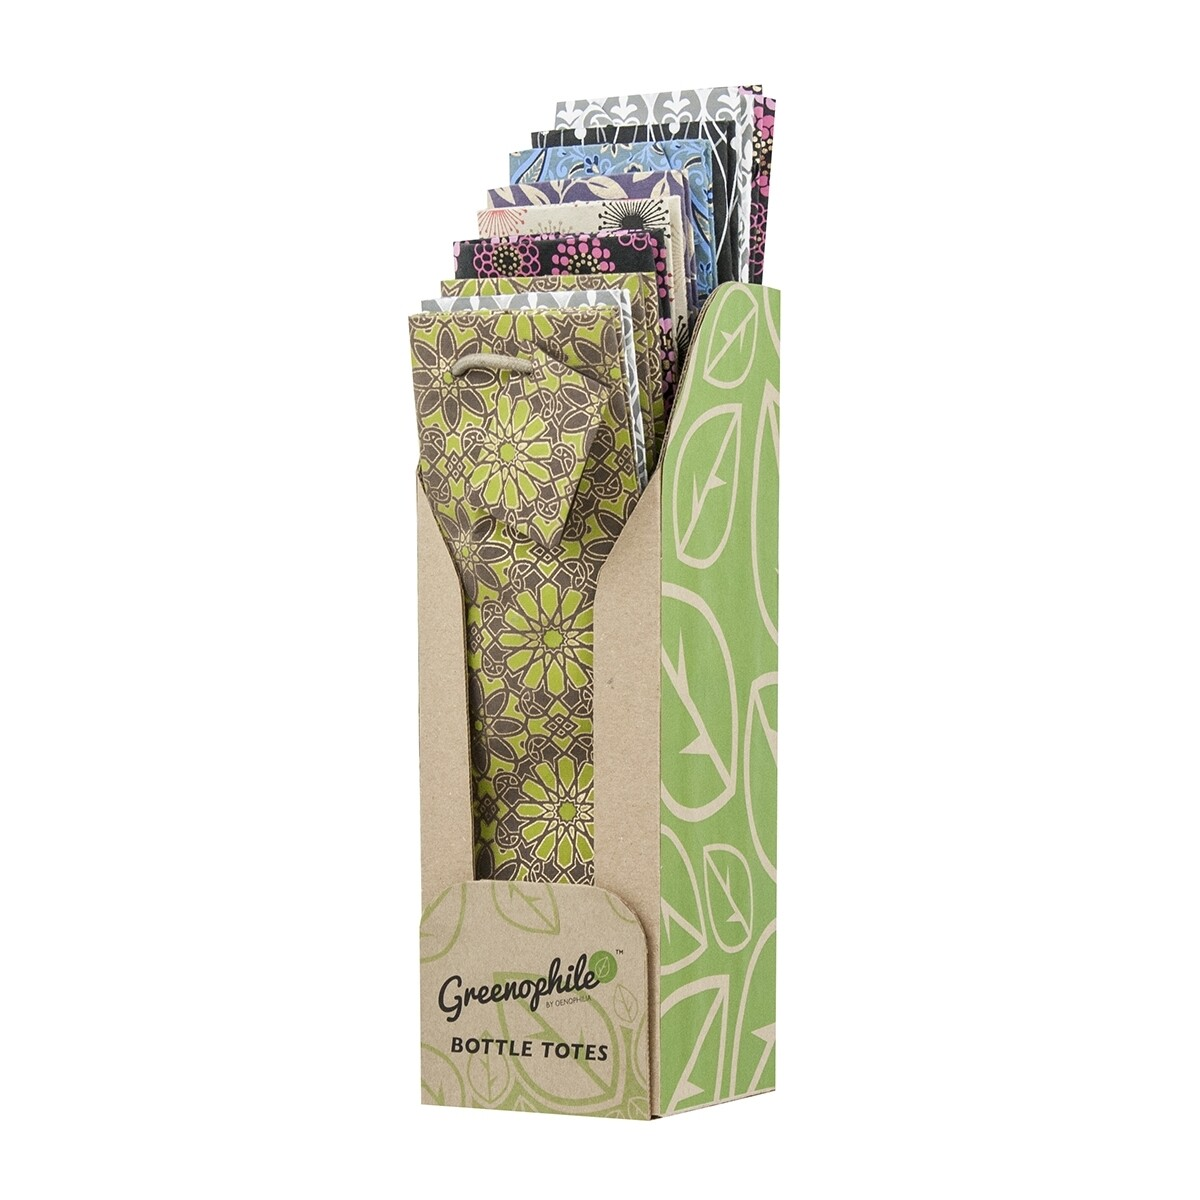 Greenophile Recycled Bottle Totes